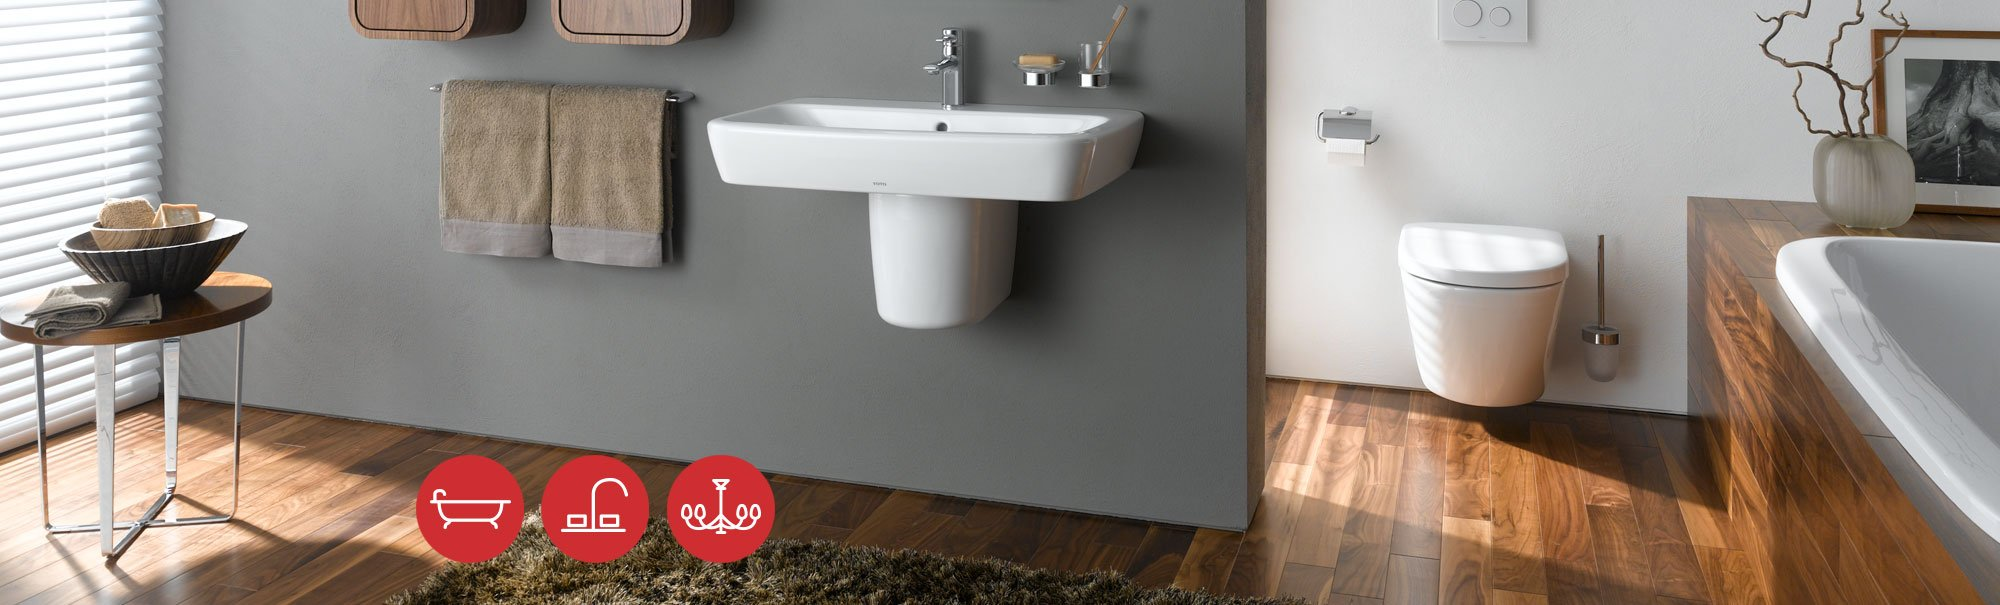 kitchen & bath needs browse the classics catalogue products